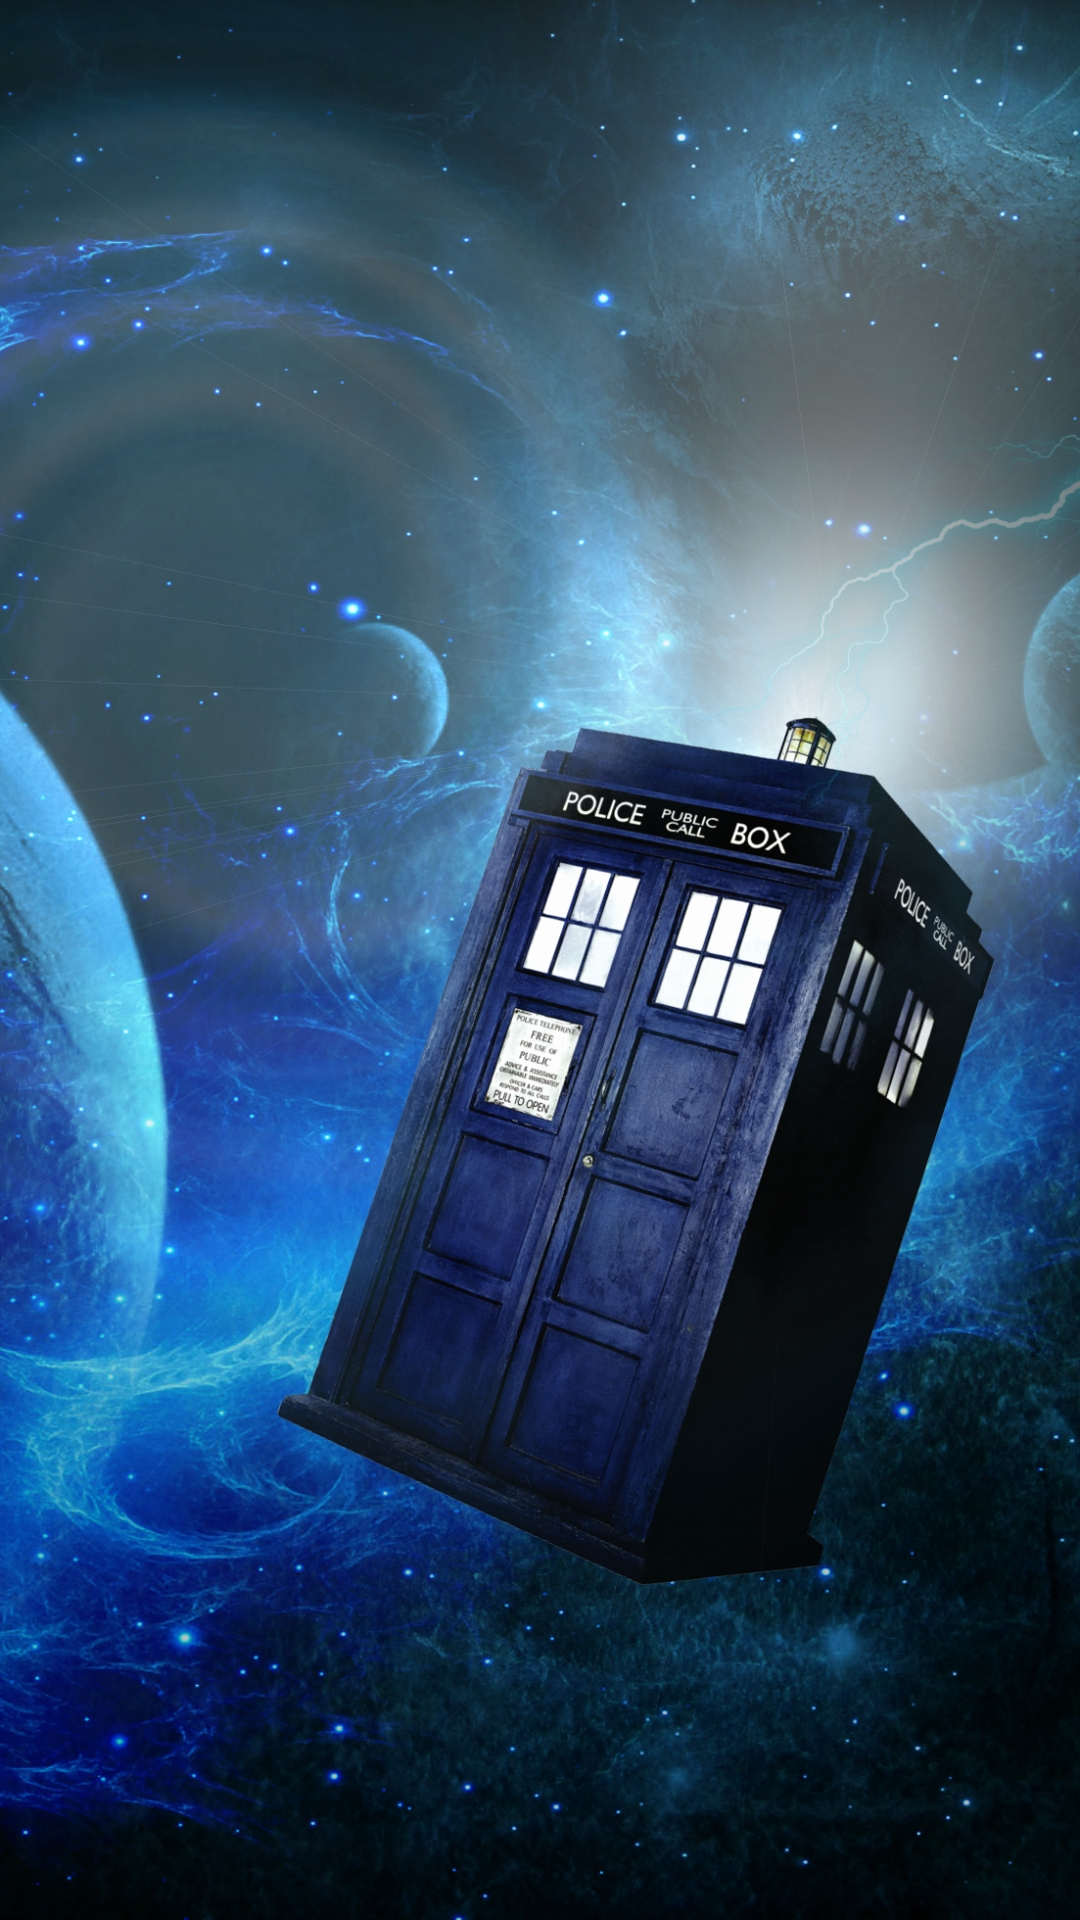 doctor who iphone wallpaper elegant doctor who wallpaper iphone hd